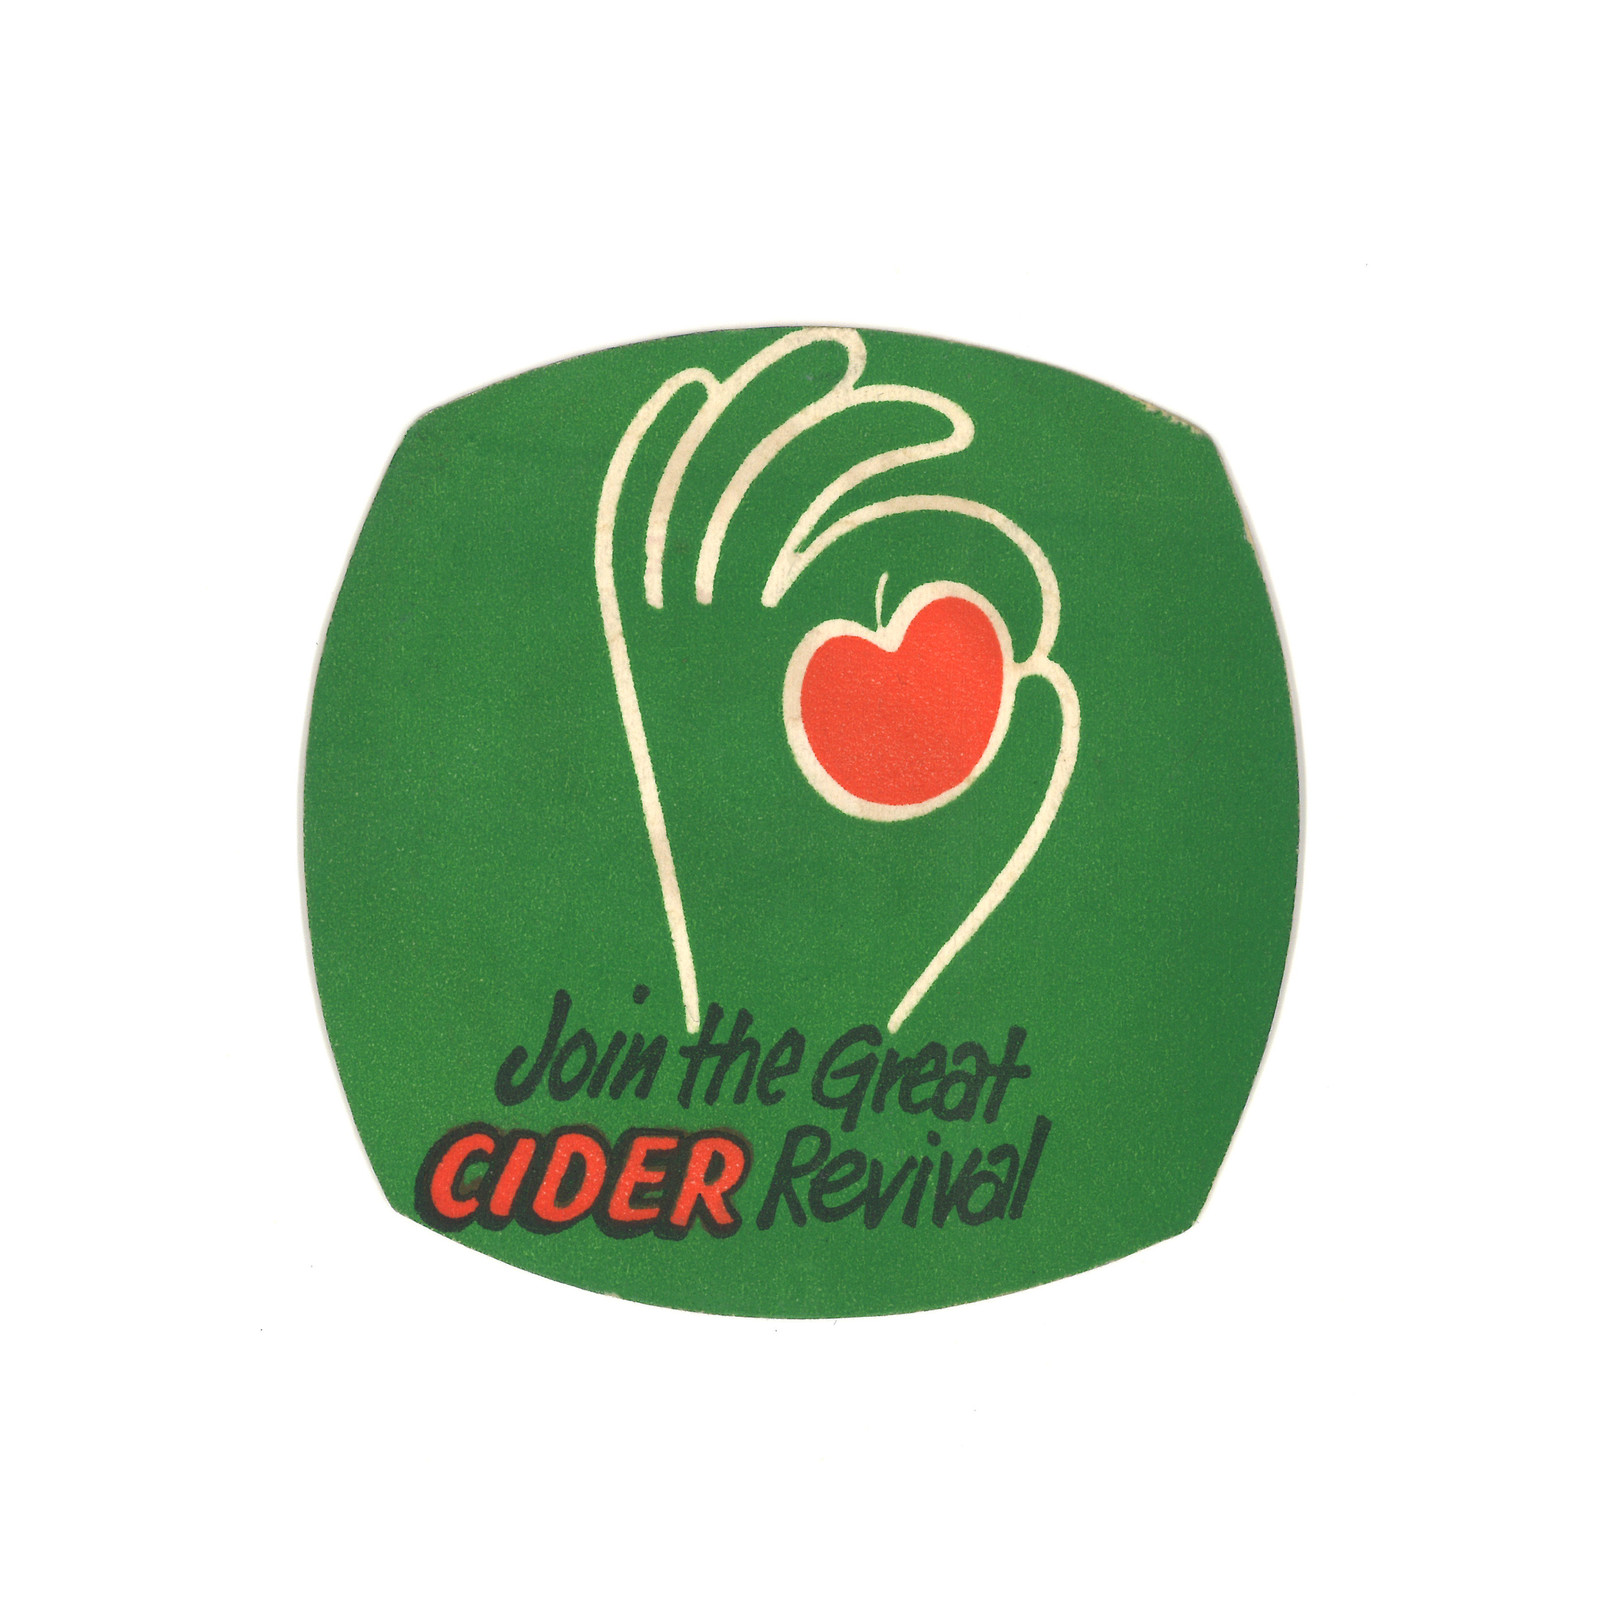 Join the Great Cider Revival